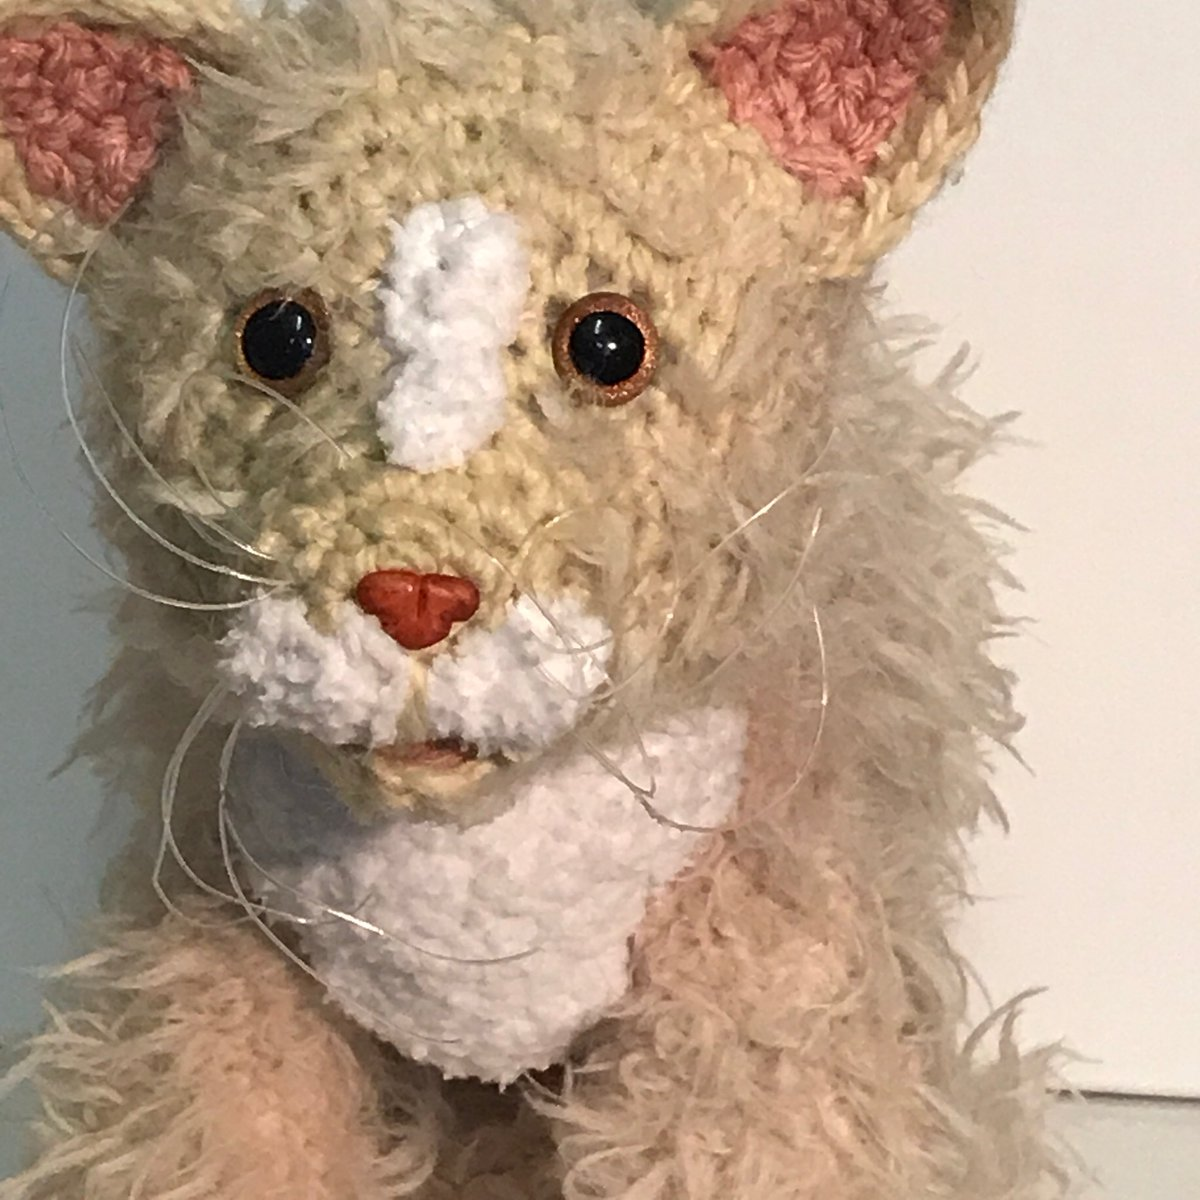 Had fun making this furry #Cat #ilovecats #crochet #handmade #CatsOfTwitter #cat #animals #pets #crafts #meow<br>http://pic.twitter.com/B8ypf9nt0Z